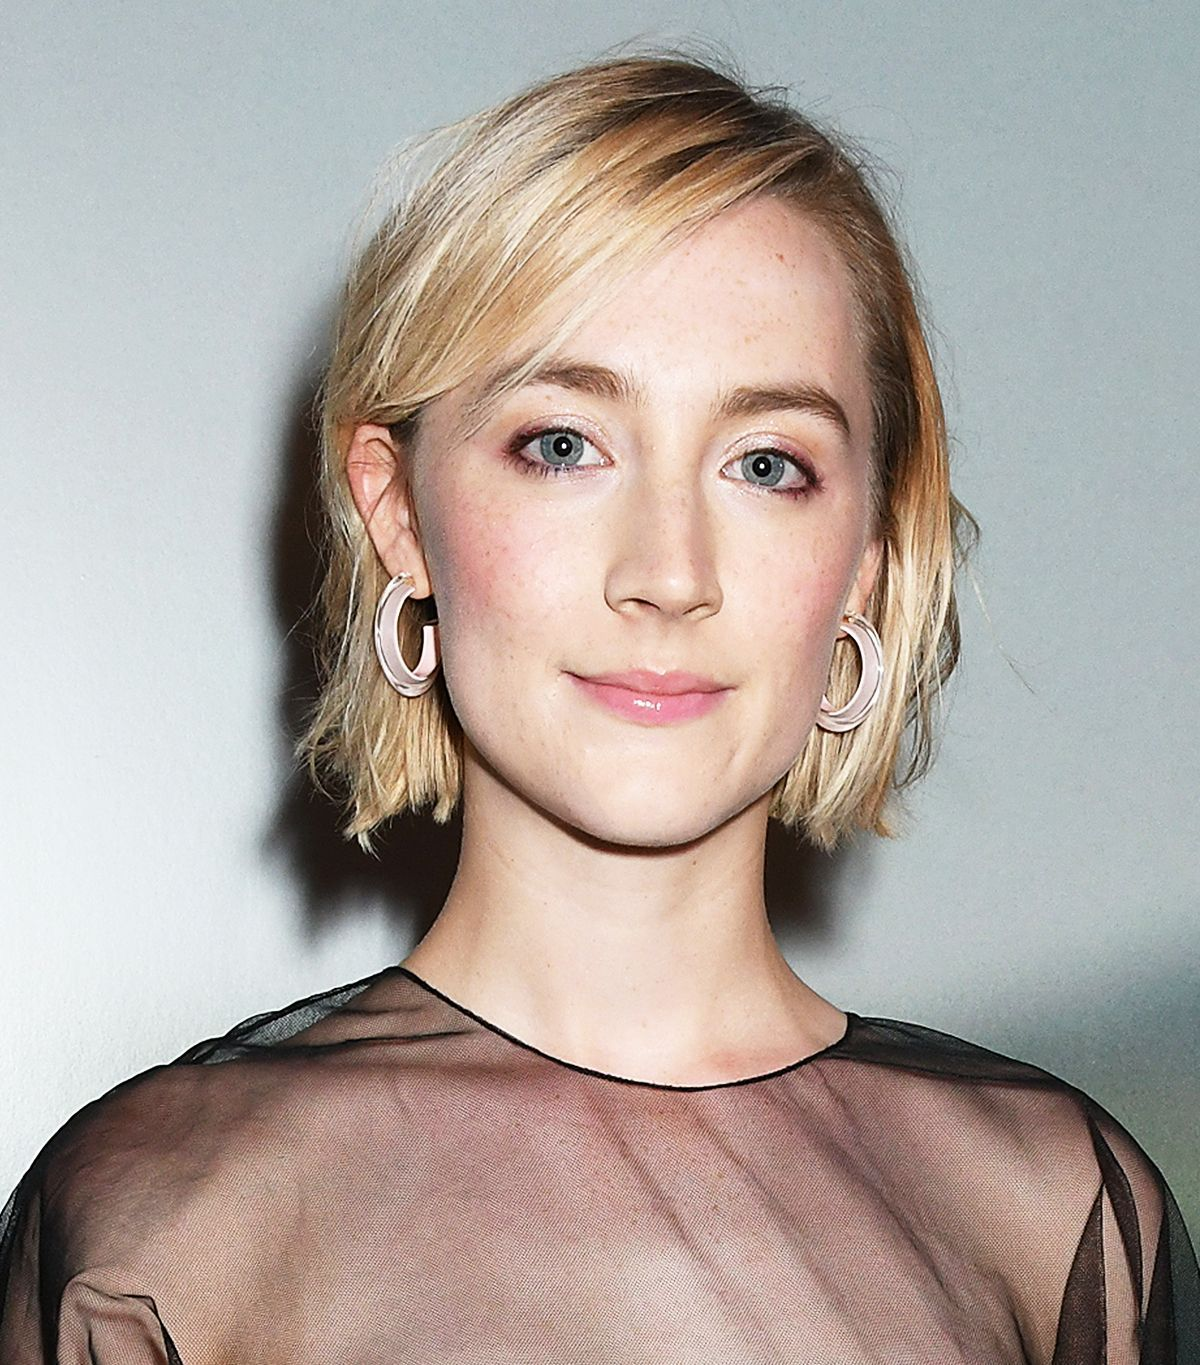 15 Cool Haircuts That Will Actually Make You Excited for Autumn forecasting